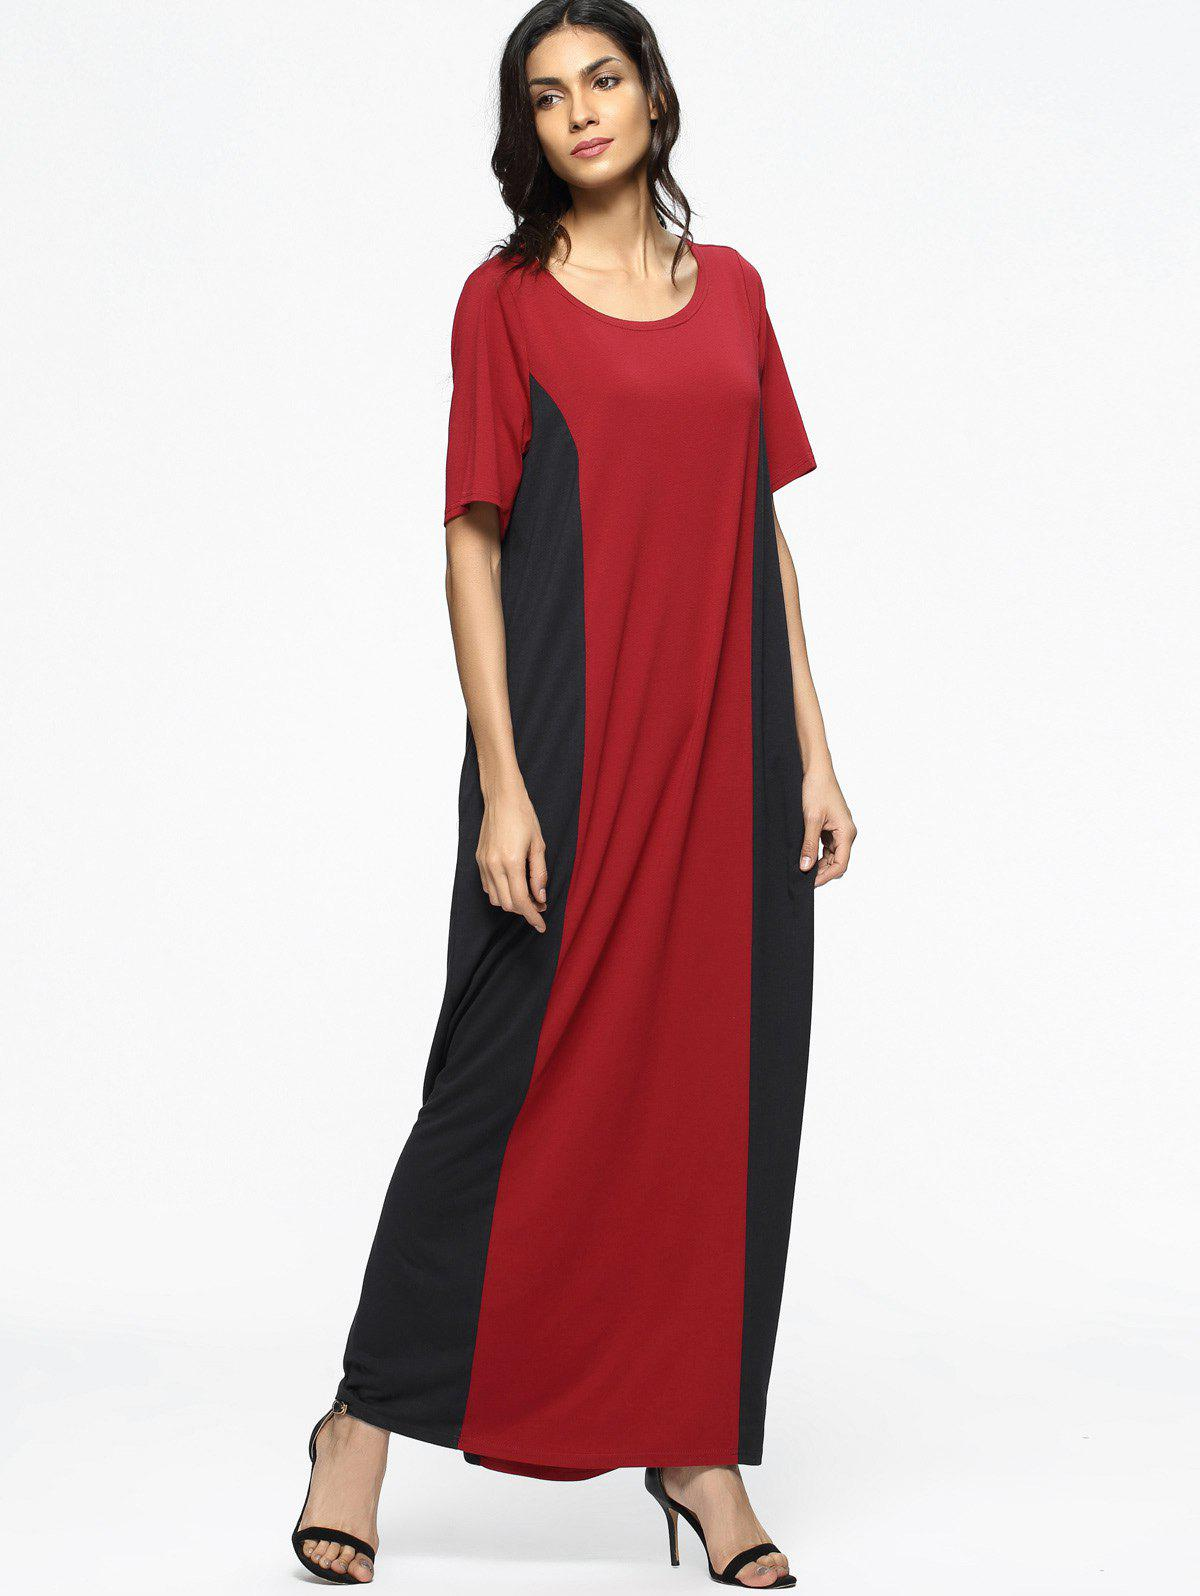 Hot Two Tone Casual Tee Maxi Dress